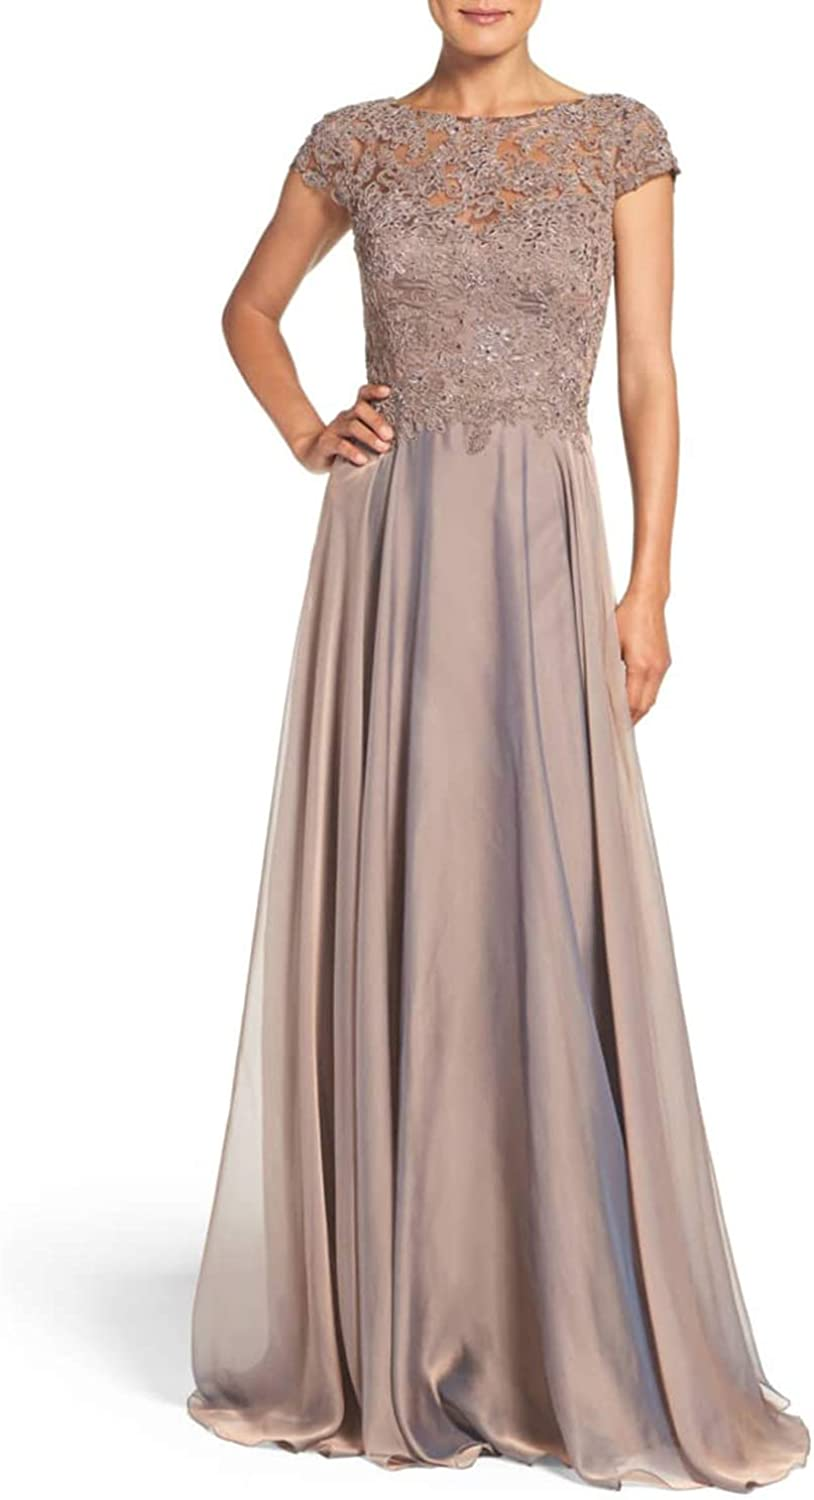 Jerald Norton Ltd Women's Illusion Beaded Lace Applique Evening Gown Mother of The Bride Dress Grey